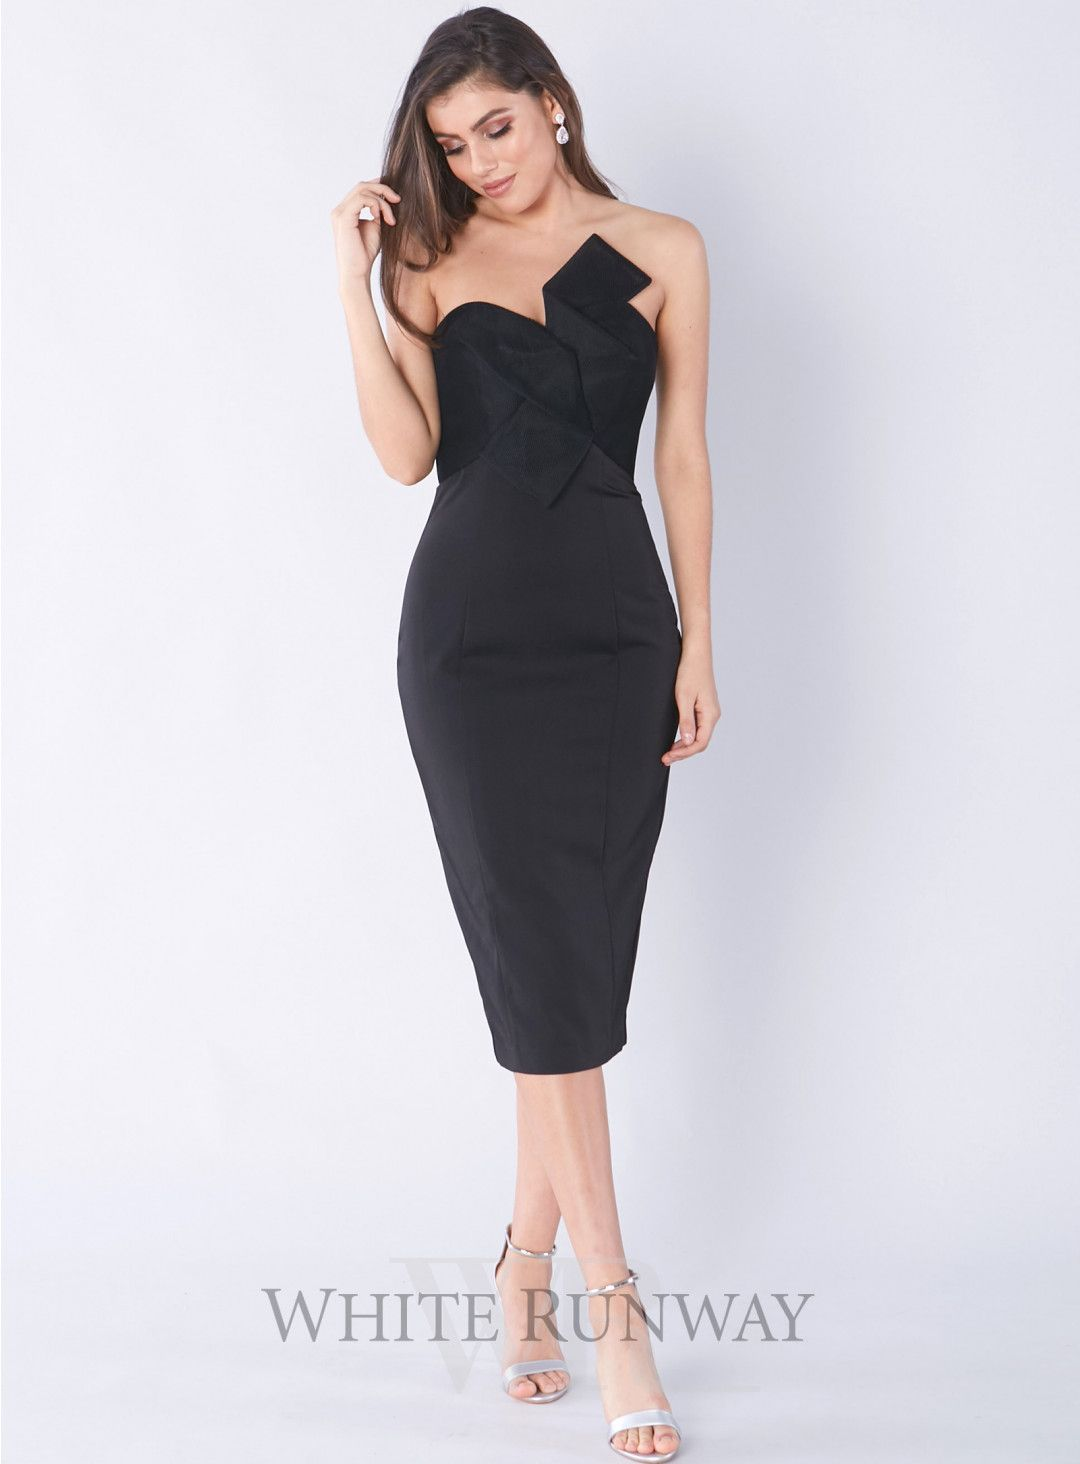 Evaleena Cocktail Dress A Stunning Lbd By Jadore A Fitted Strapless Style Featuring Mesh Detailing On The Cocktail Dress Dresses Dresses To Wear To A Wedding [ 1464 x 1080 Pixel ]